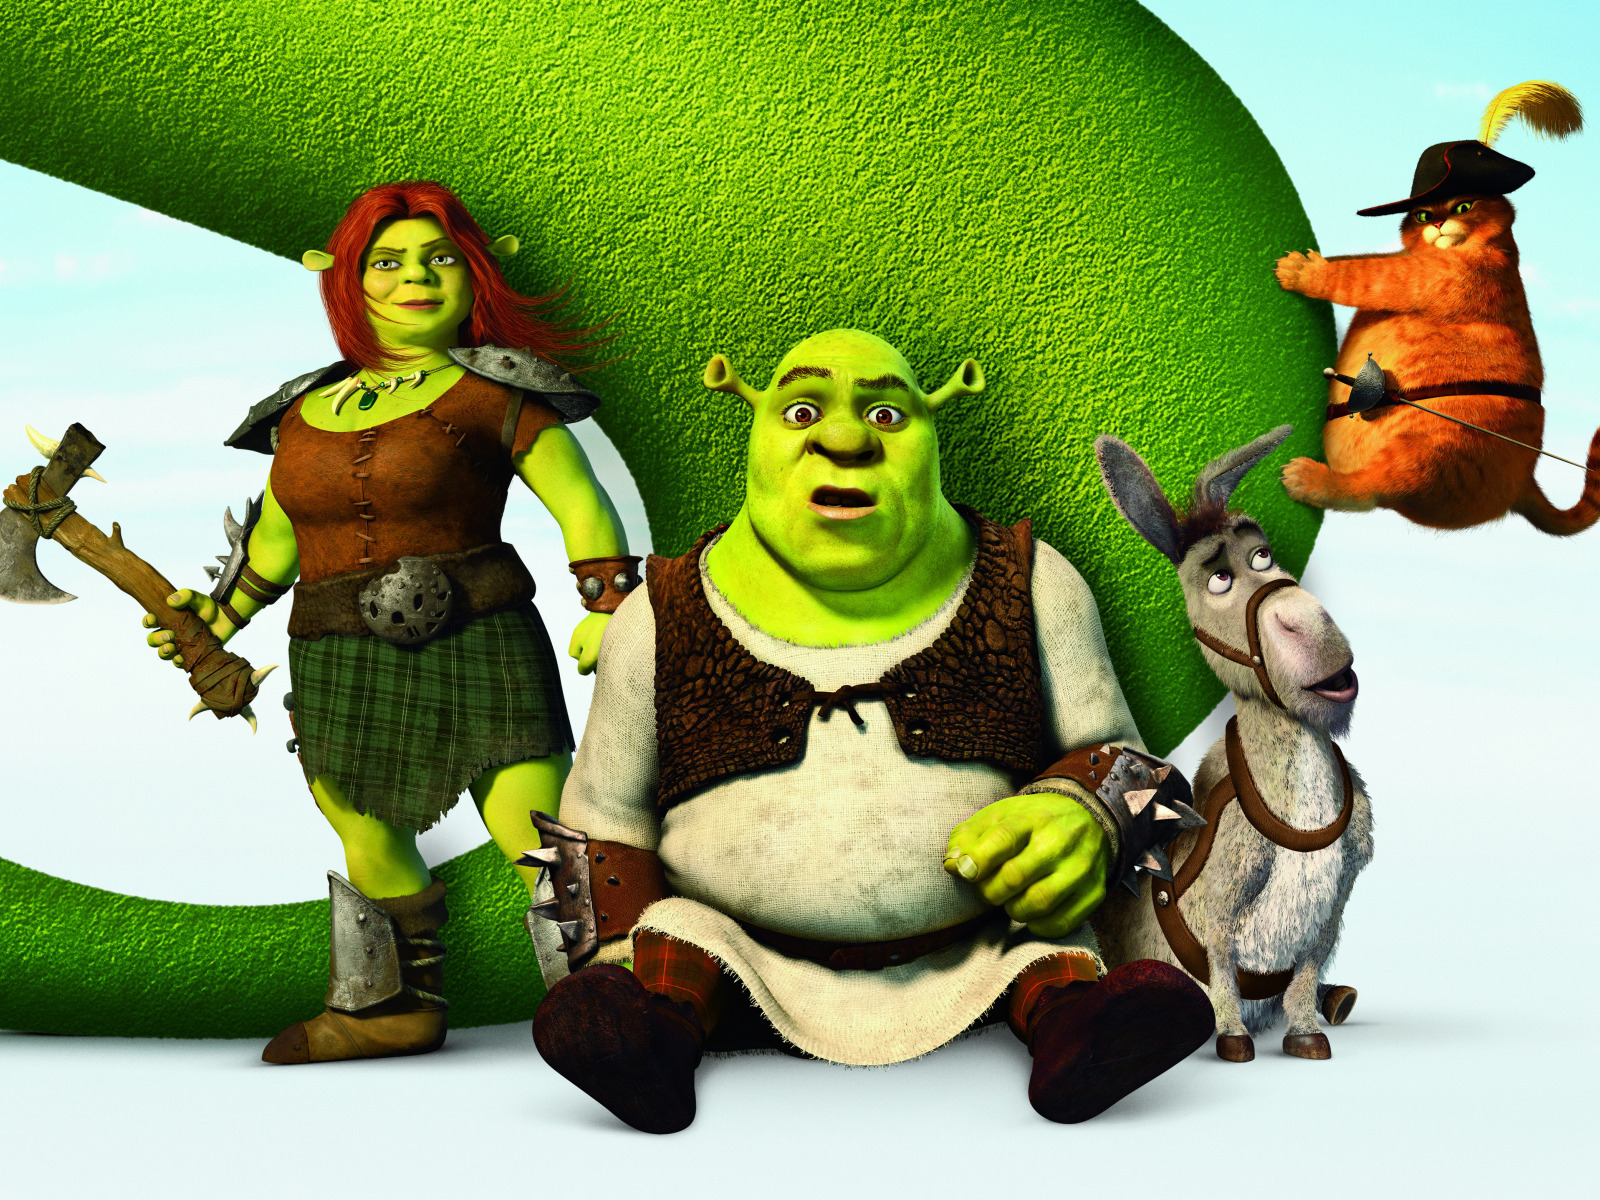 Download Wallpaper Shrek Cartoon Hat Poster Ogre Sword